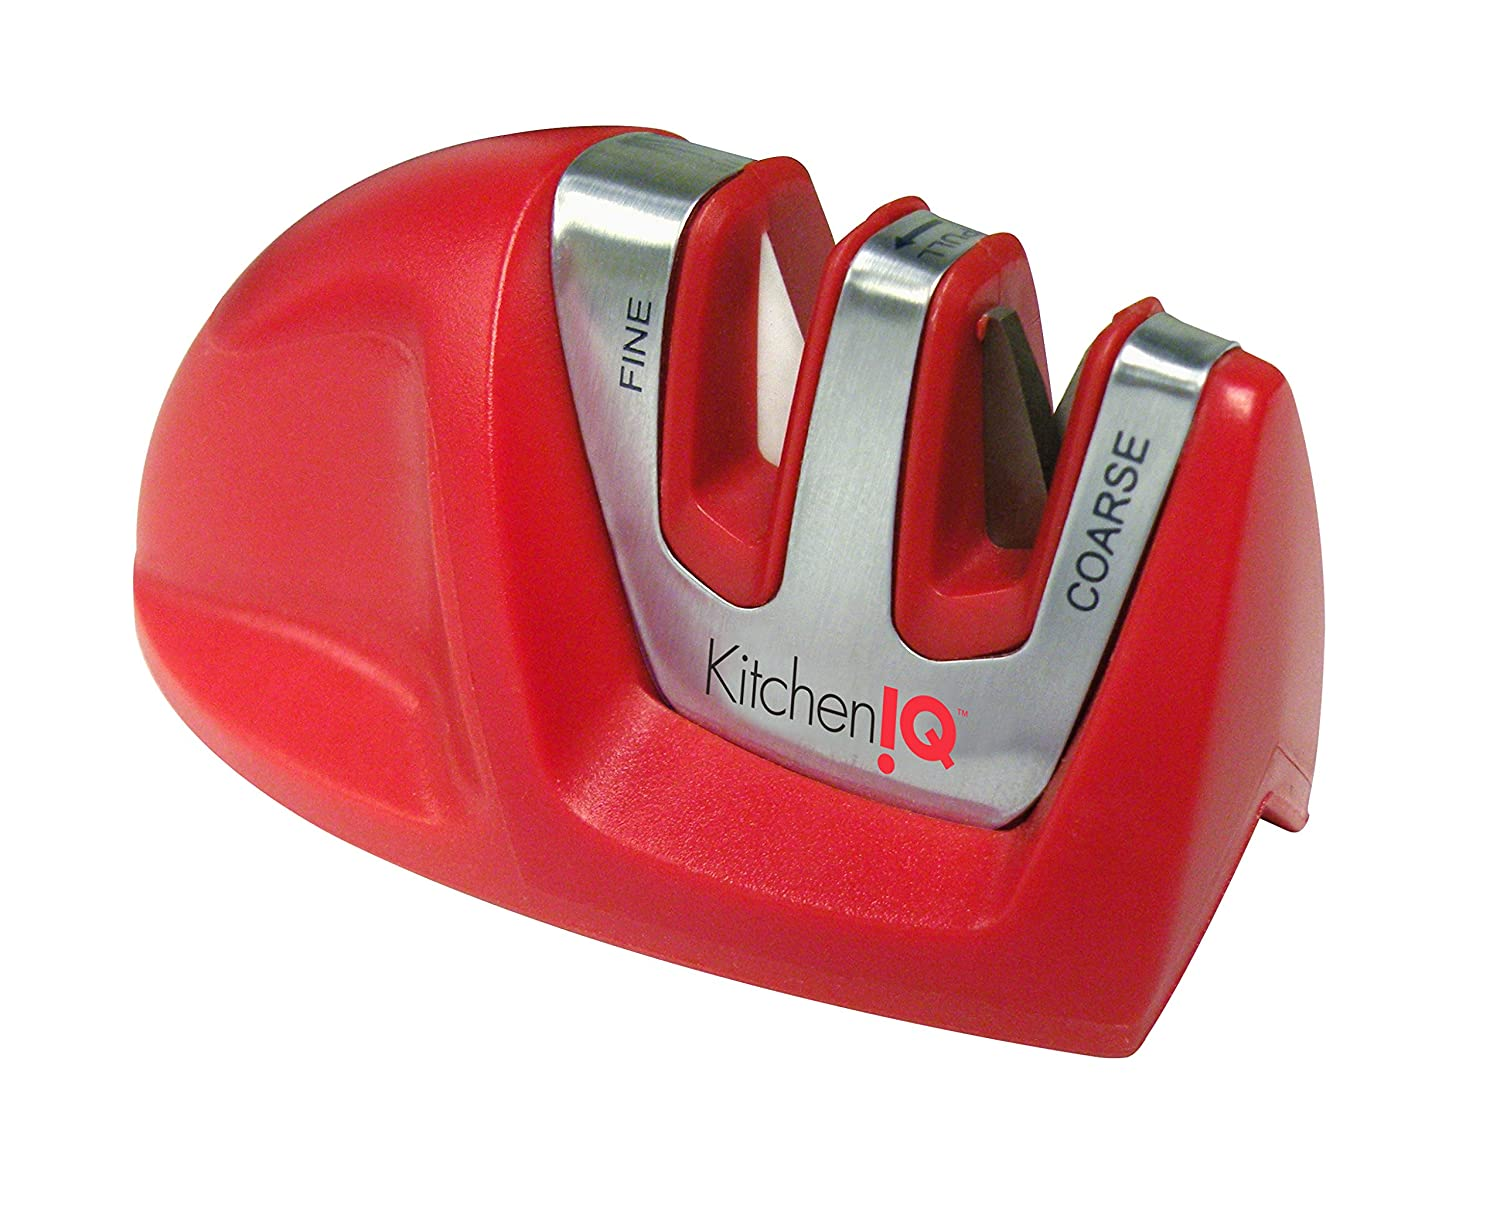 Kitchen IQ 50883 Edge Grip 2-Stage Knife Sharpener, Red